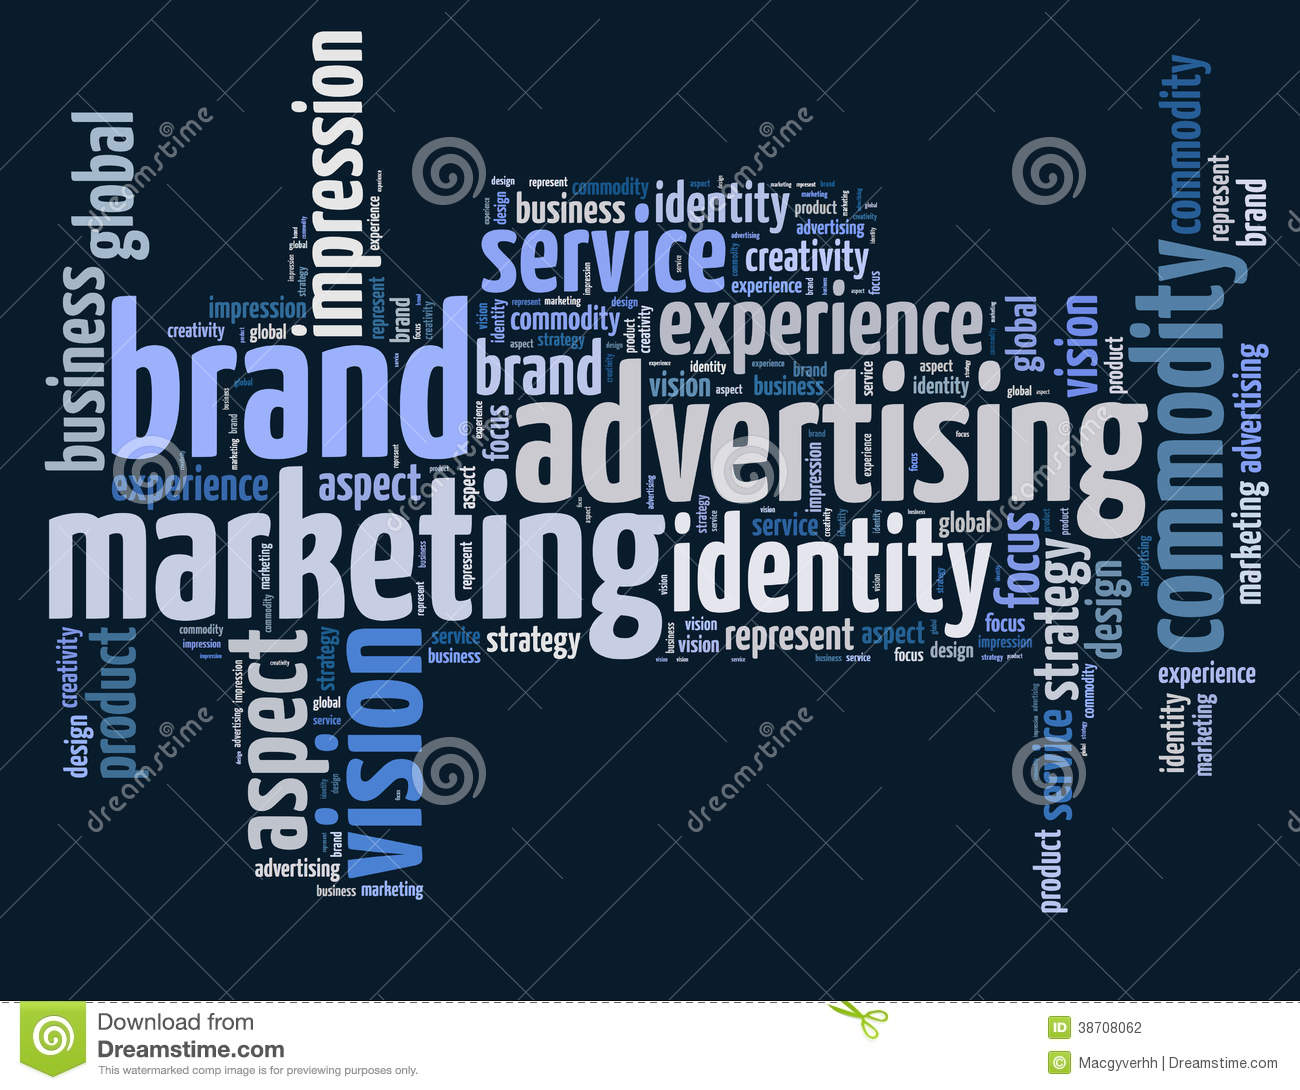 Marketing Methods in Chemical Industry